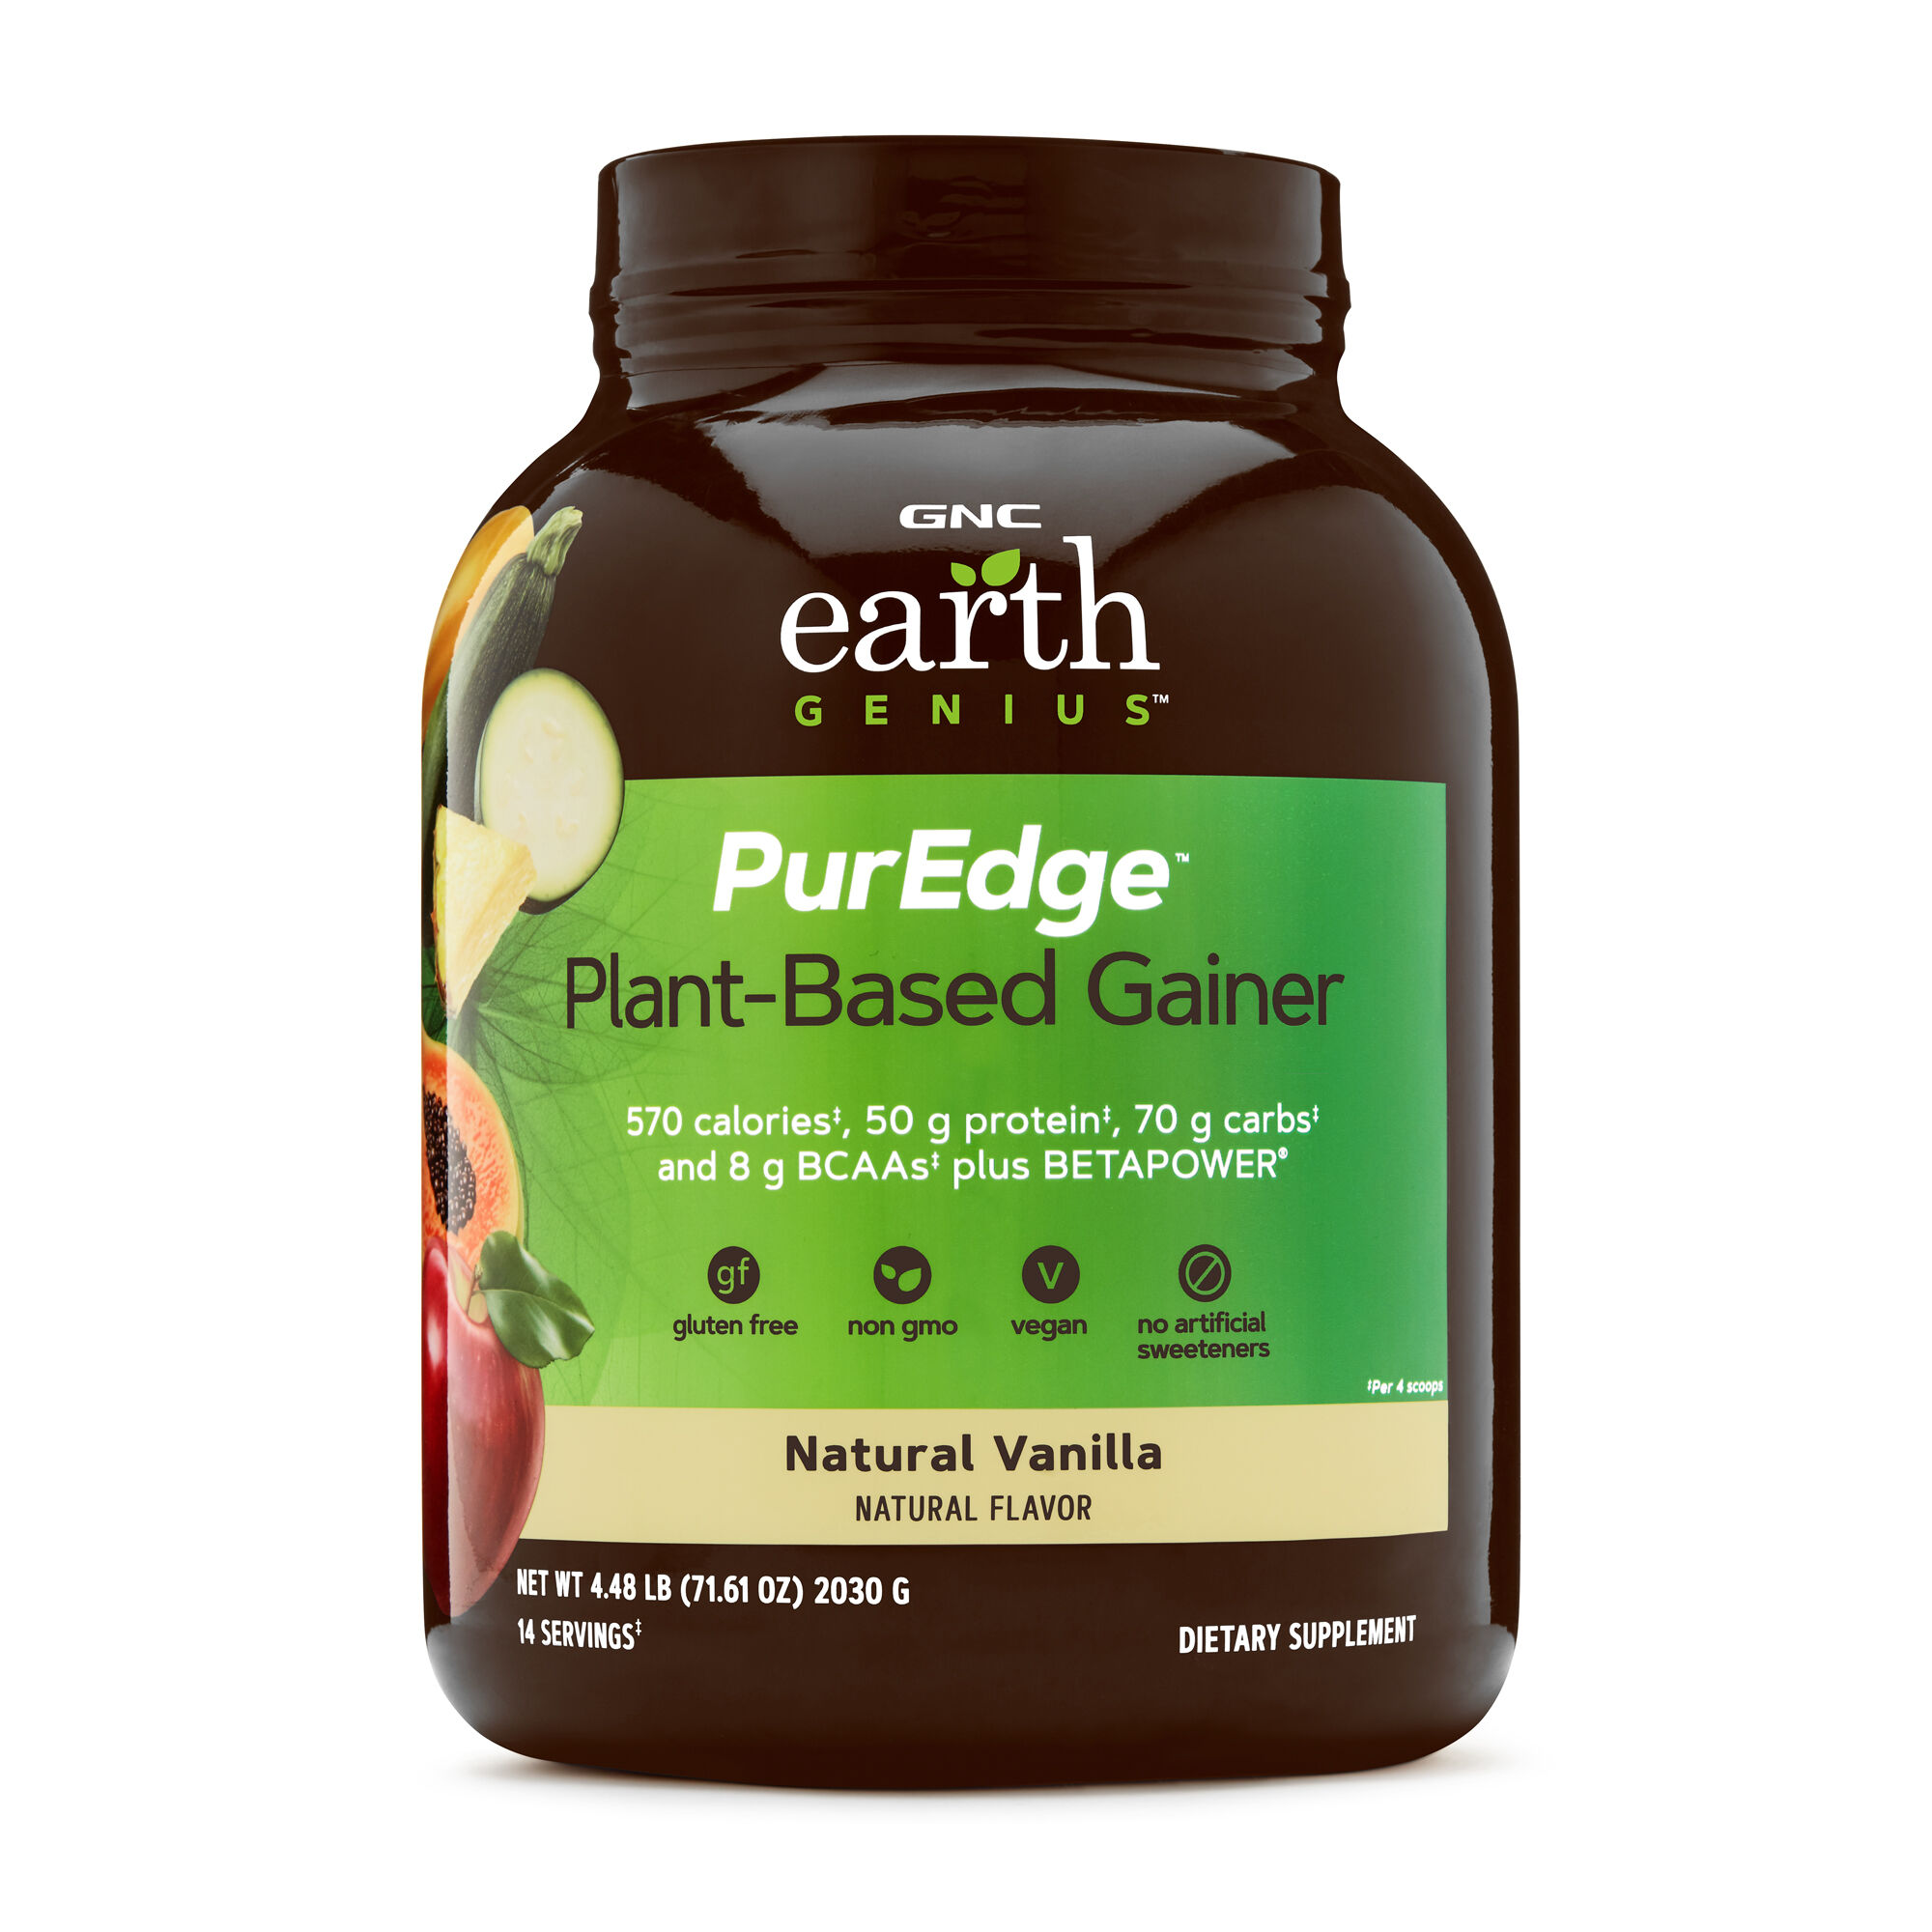 Earth Genius Pureedge Plant Based Gainer Natural Vanilla Gnc